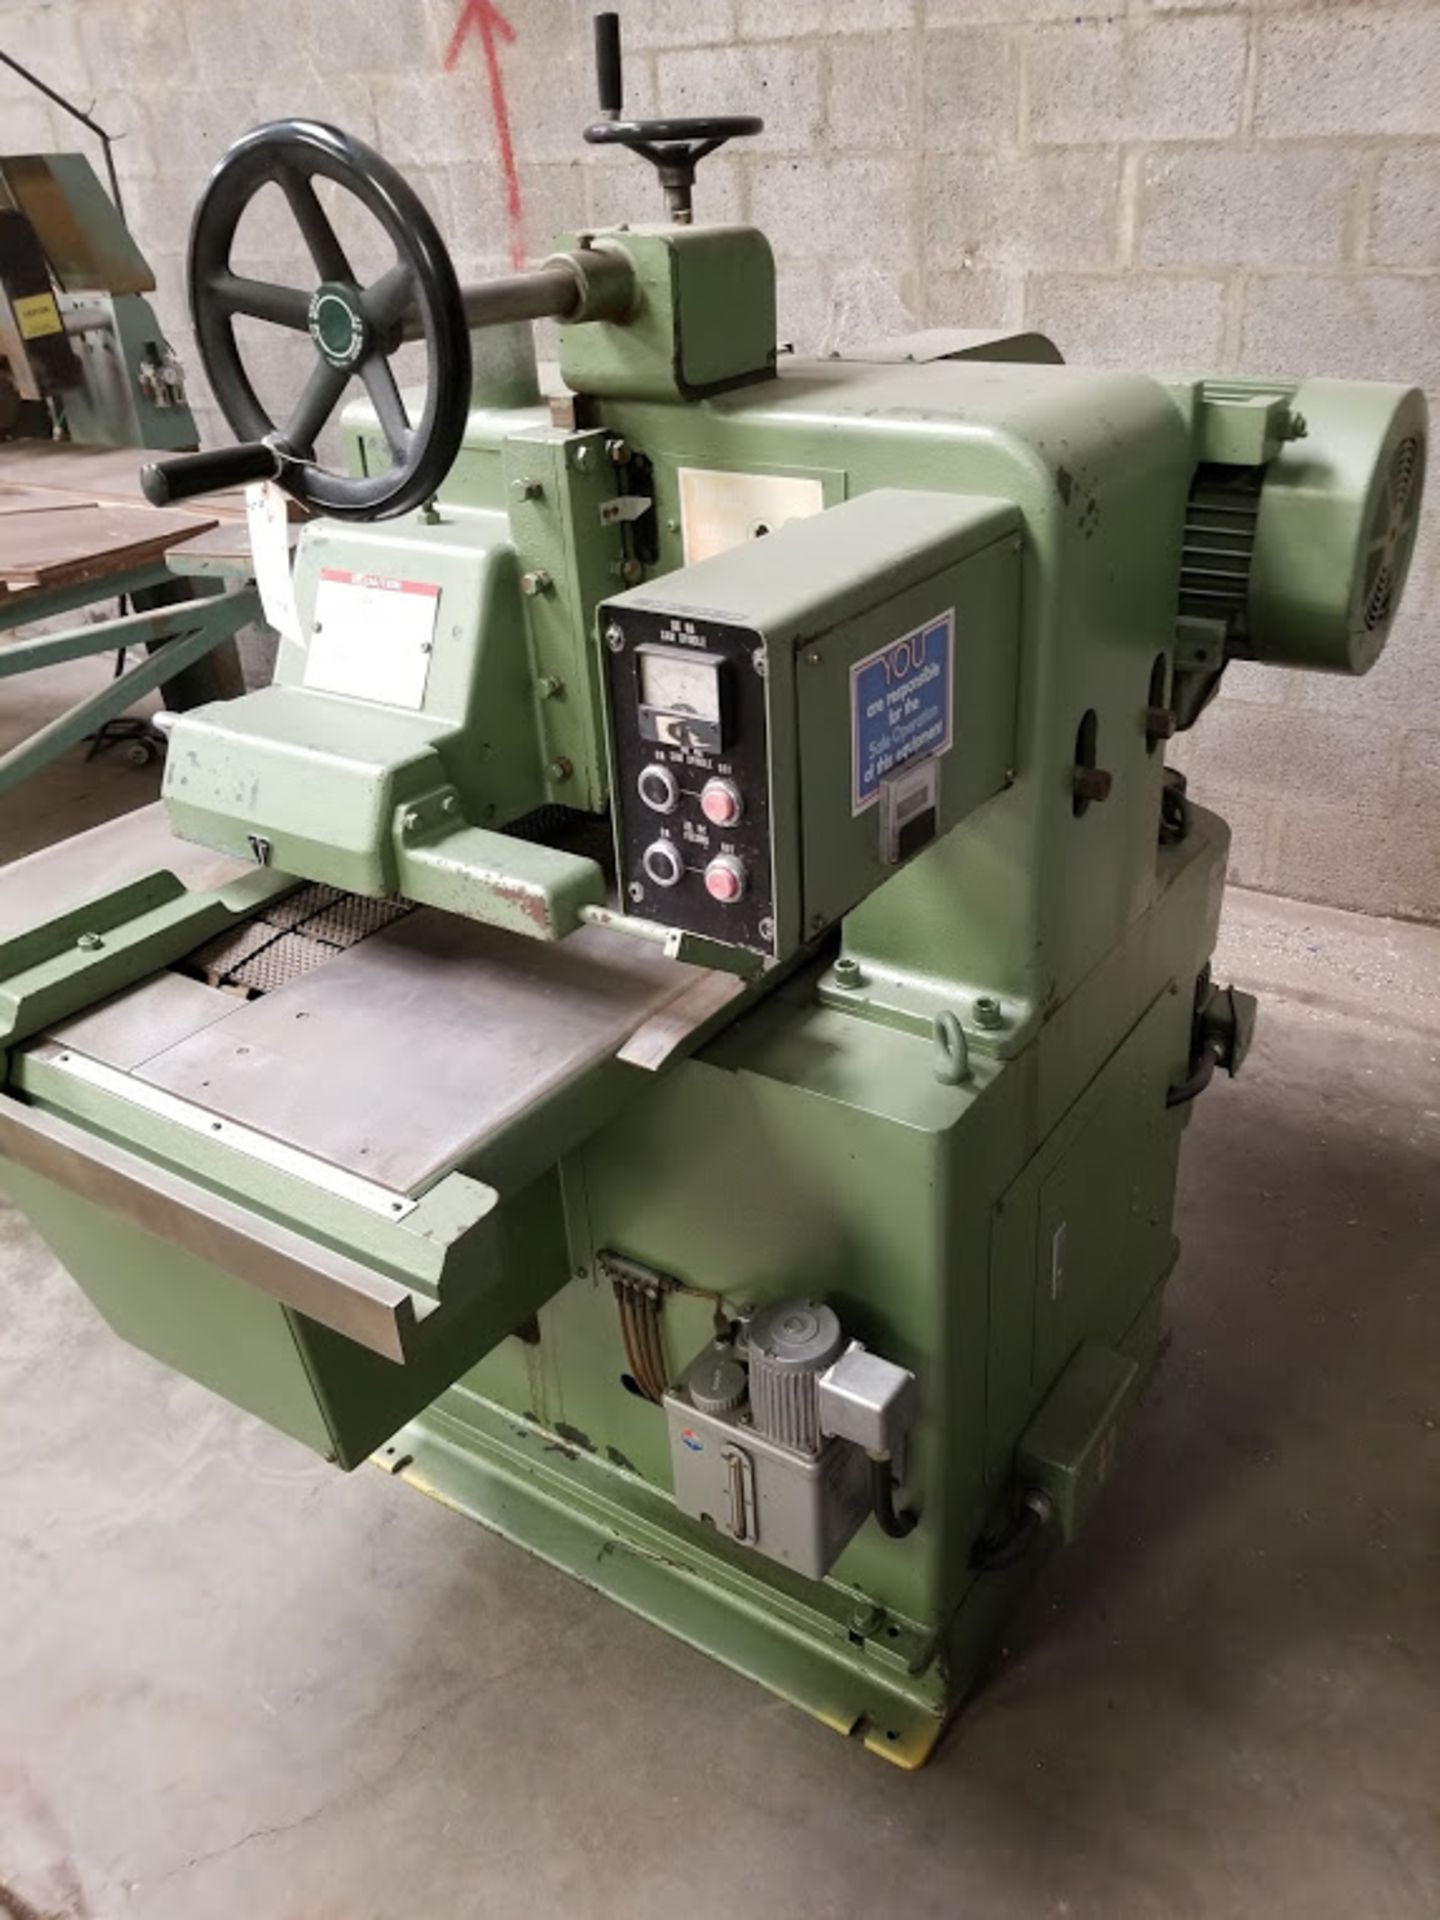 Lot 6 - Takekawa Straight Line Rip Saw, Model #RB25III, 10 HP 220/440 volt 3 phase, Varible speed drive